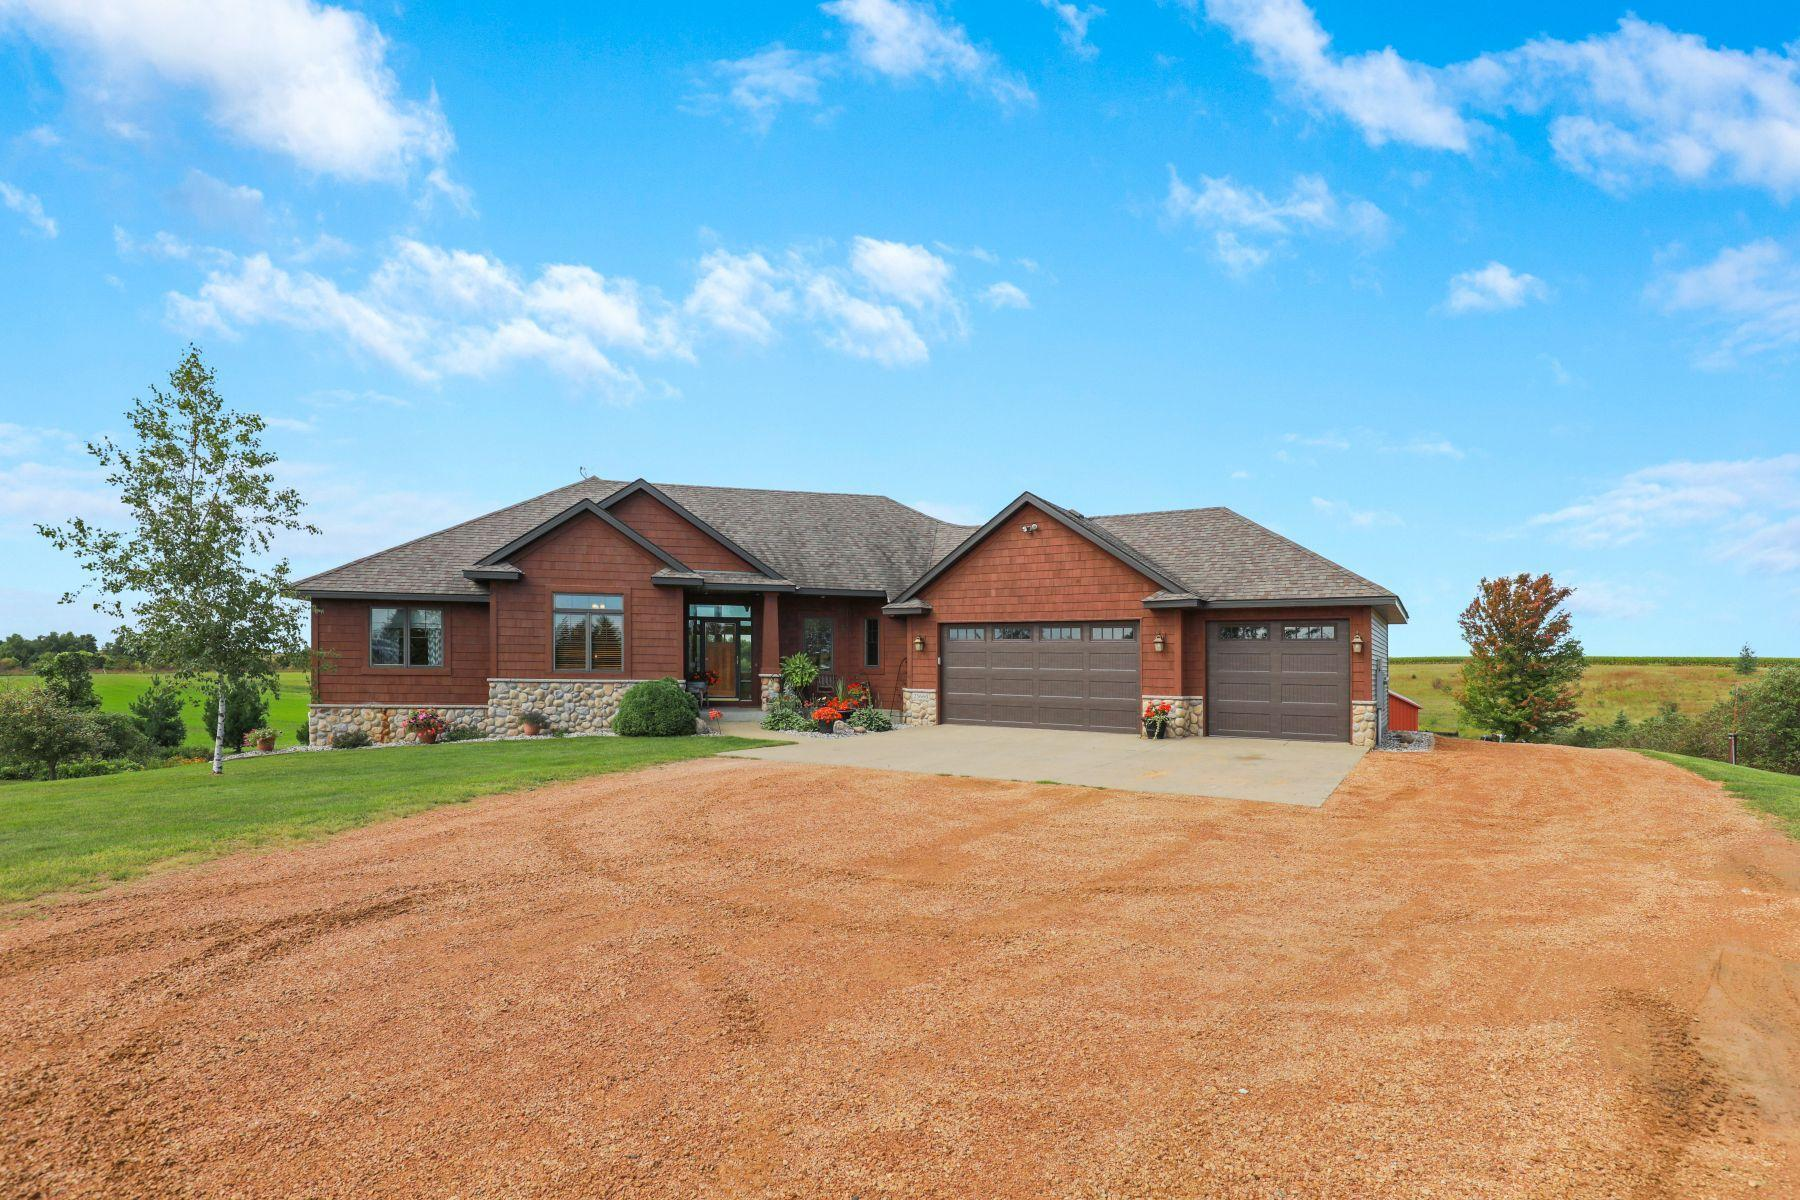 All Twin Cities Hobby Farms 20+ Acres For Sale | Acreage| Horse Farms |  Twin Cities Real Estate | MN Homes